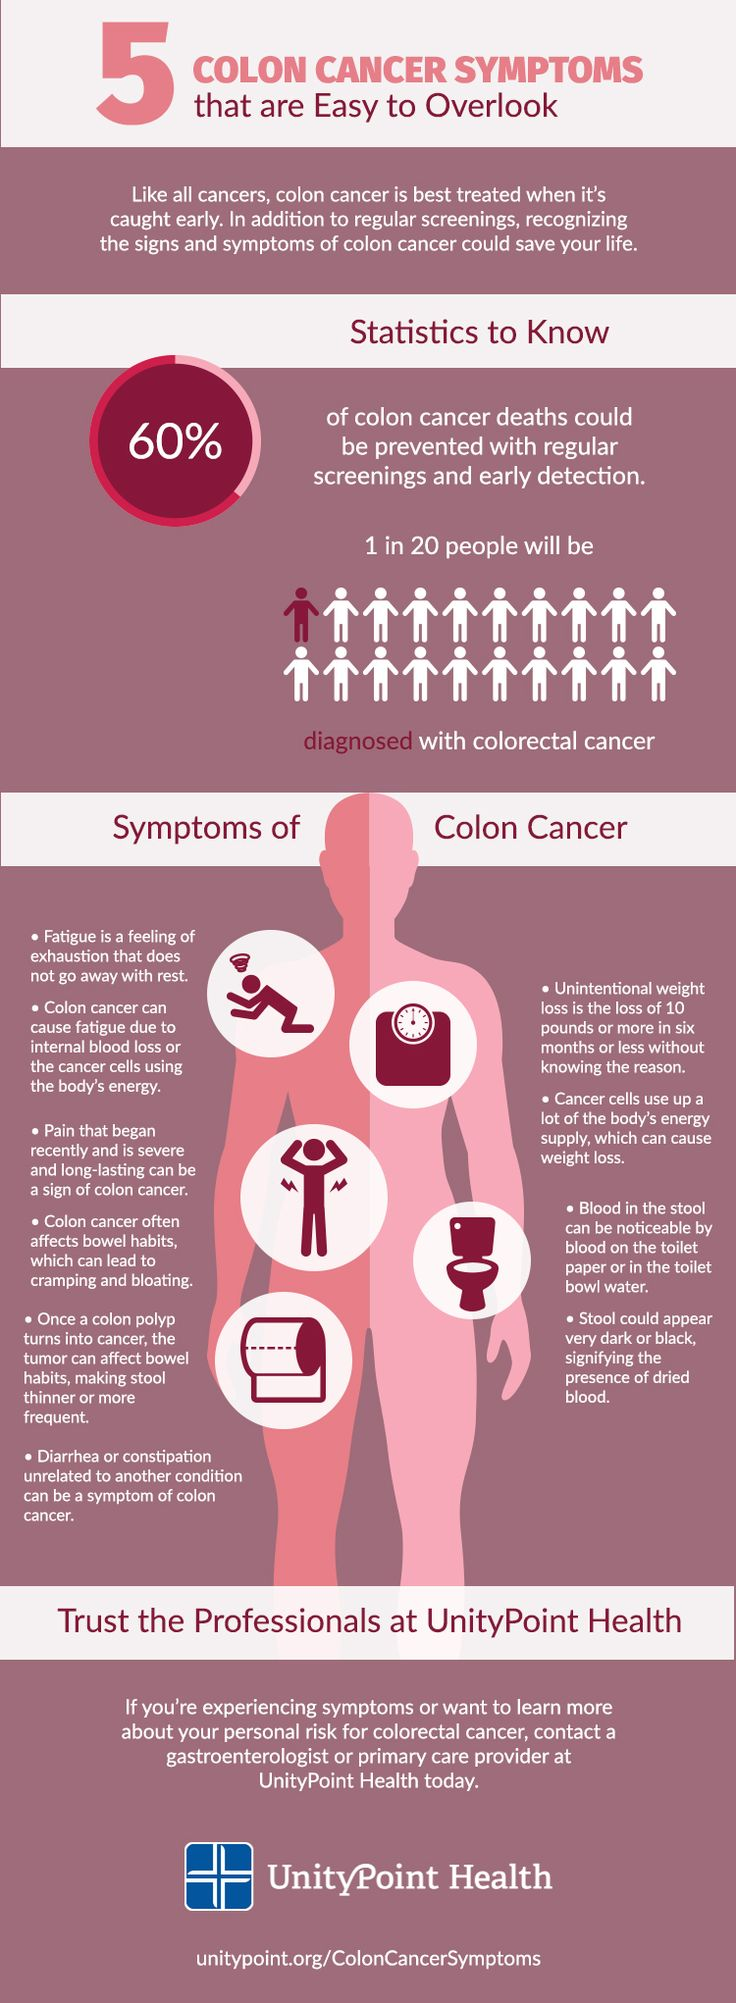 12 best images about crohns stuff on pinterest cas types of cancers and stay strong. Black Bedroom Furniture Sets. Home Design Ideas